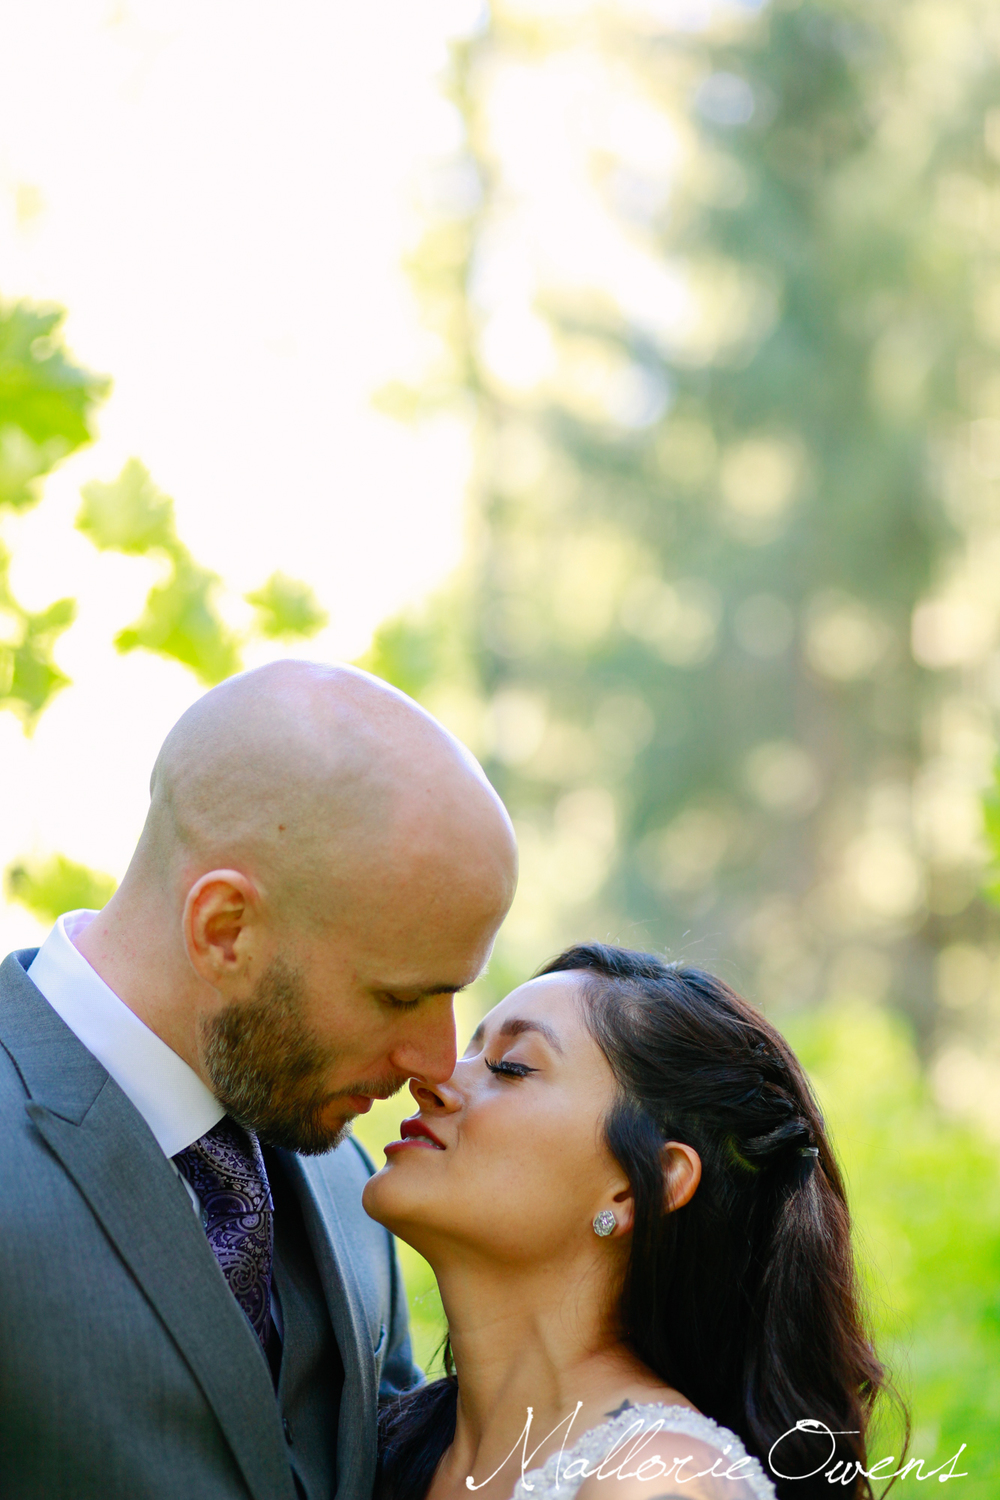 Juneau, Alaska Wedding Photography | MALLORIE OWENS